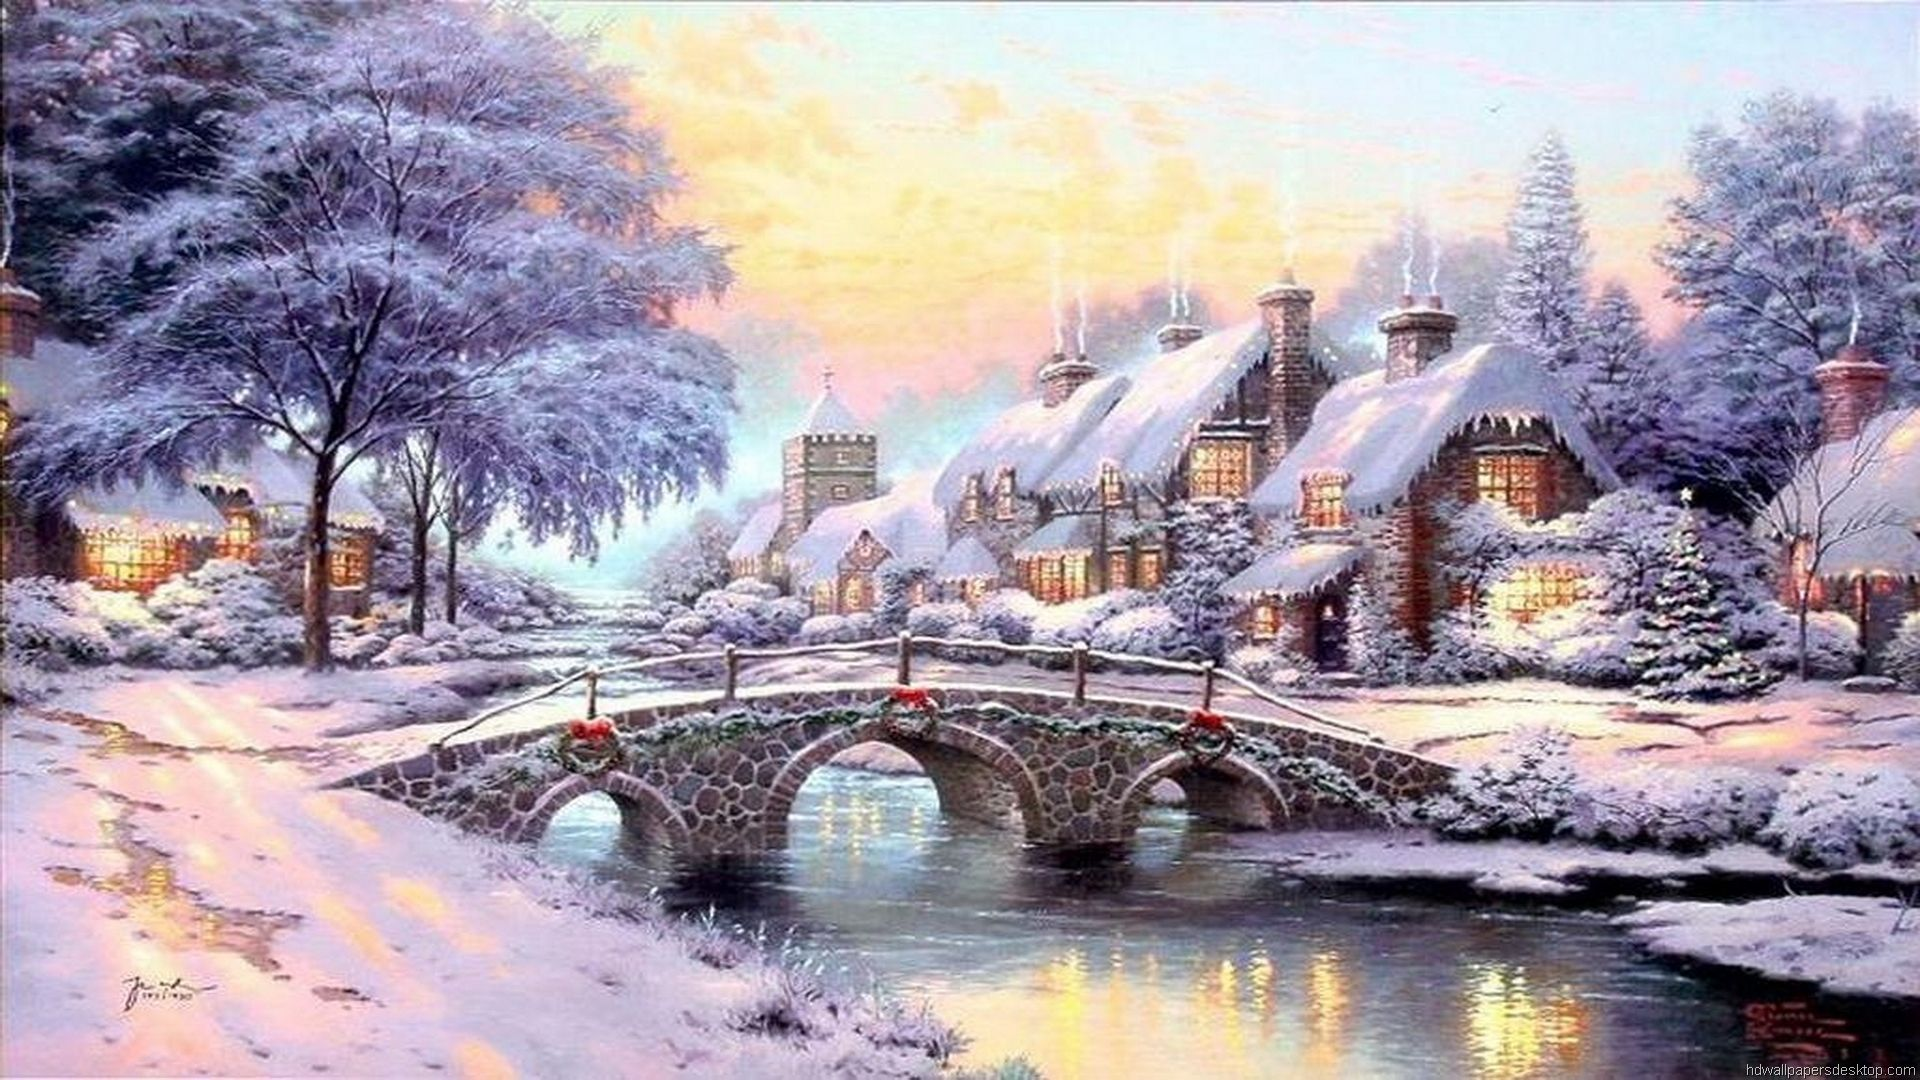 Thomas Kinkade Painting 57 Jpg Thomas Kinkade Paintings Thomas Kinkade Christmas Kinkade Paintings